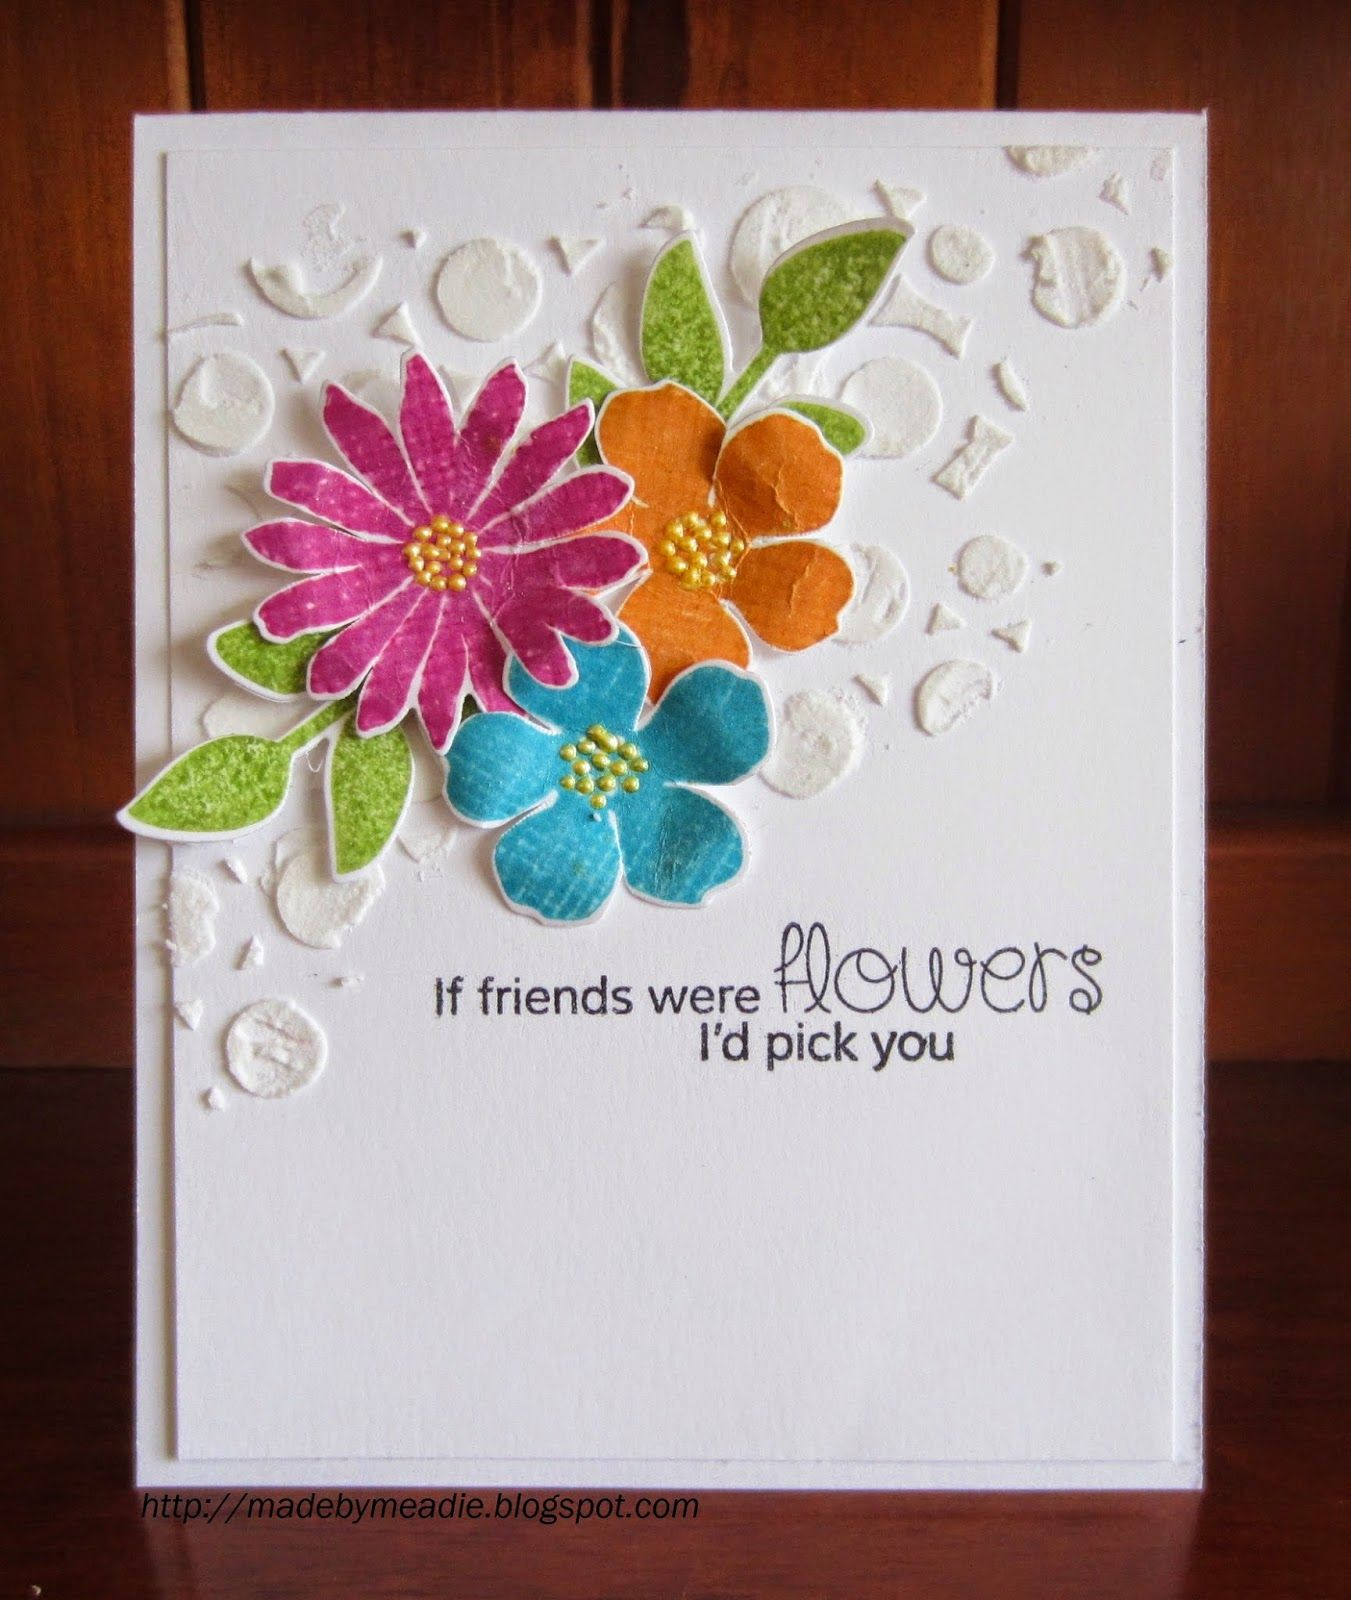 Made by Meadie: If friends were flowers